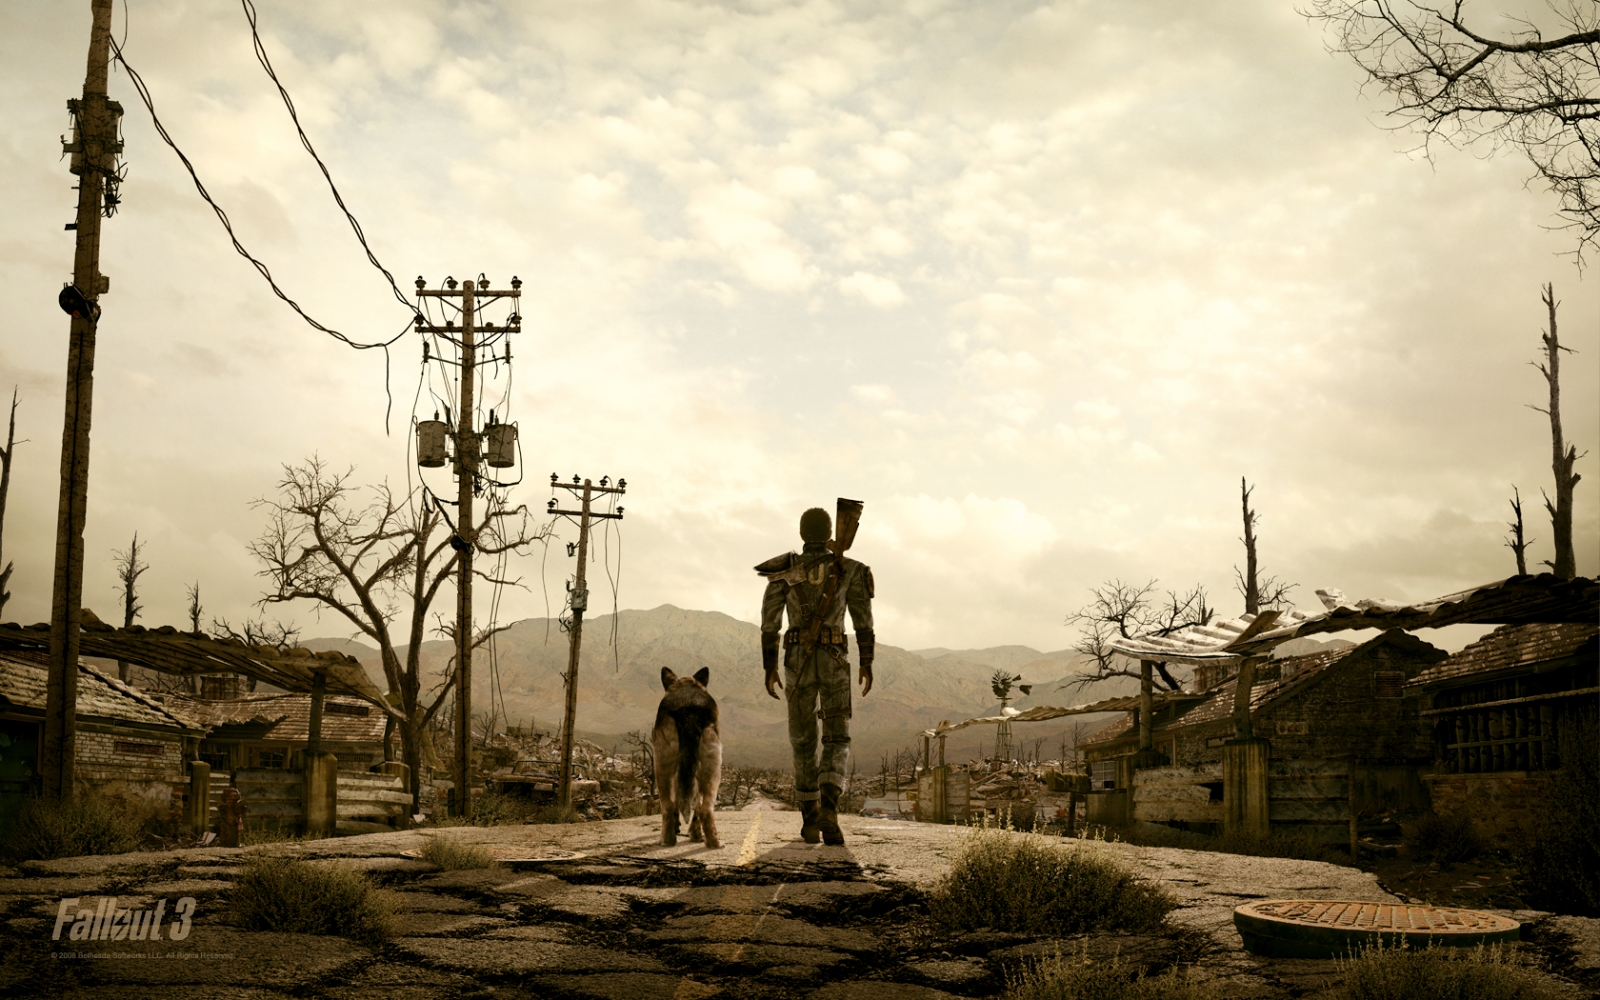 Fallout 3 - The Road - 1920X1080p